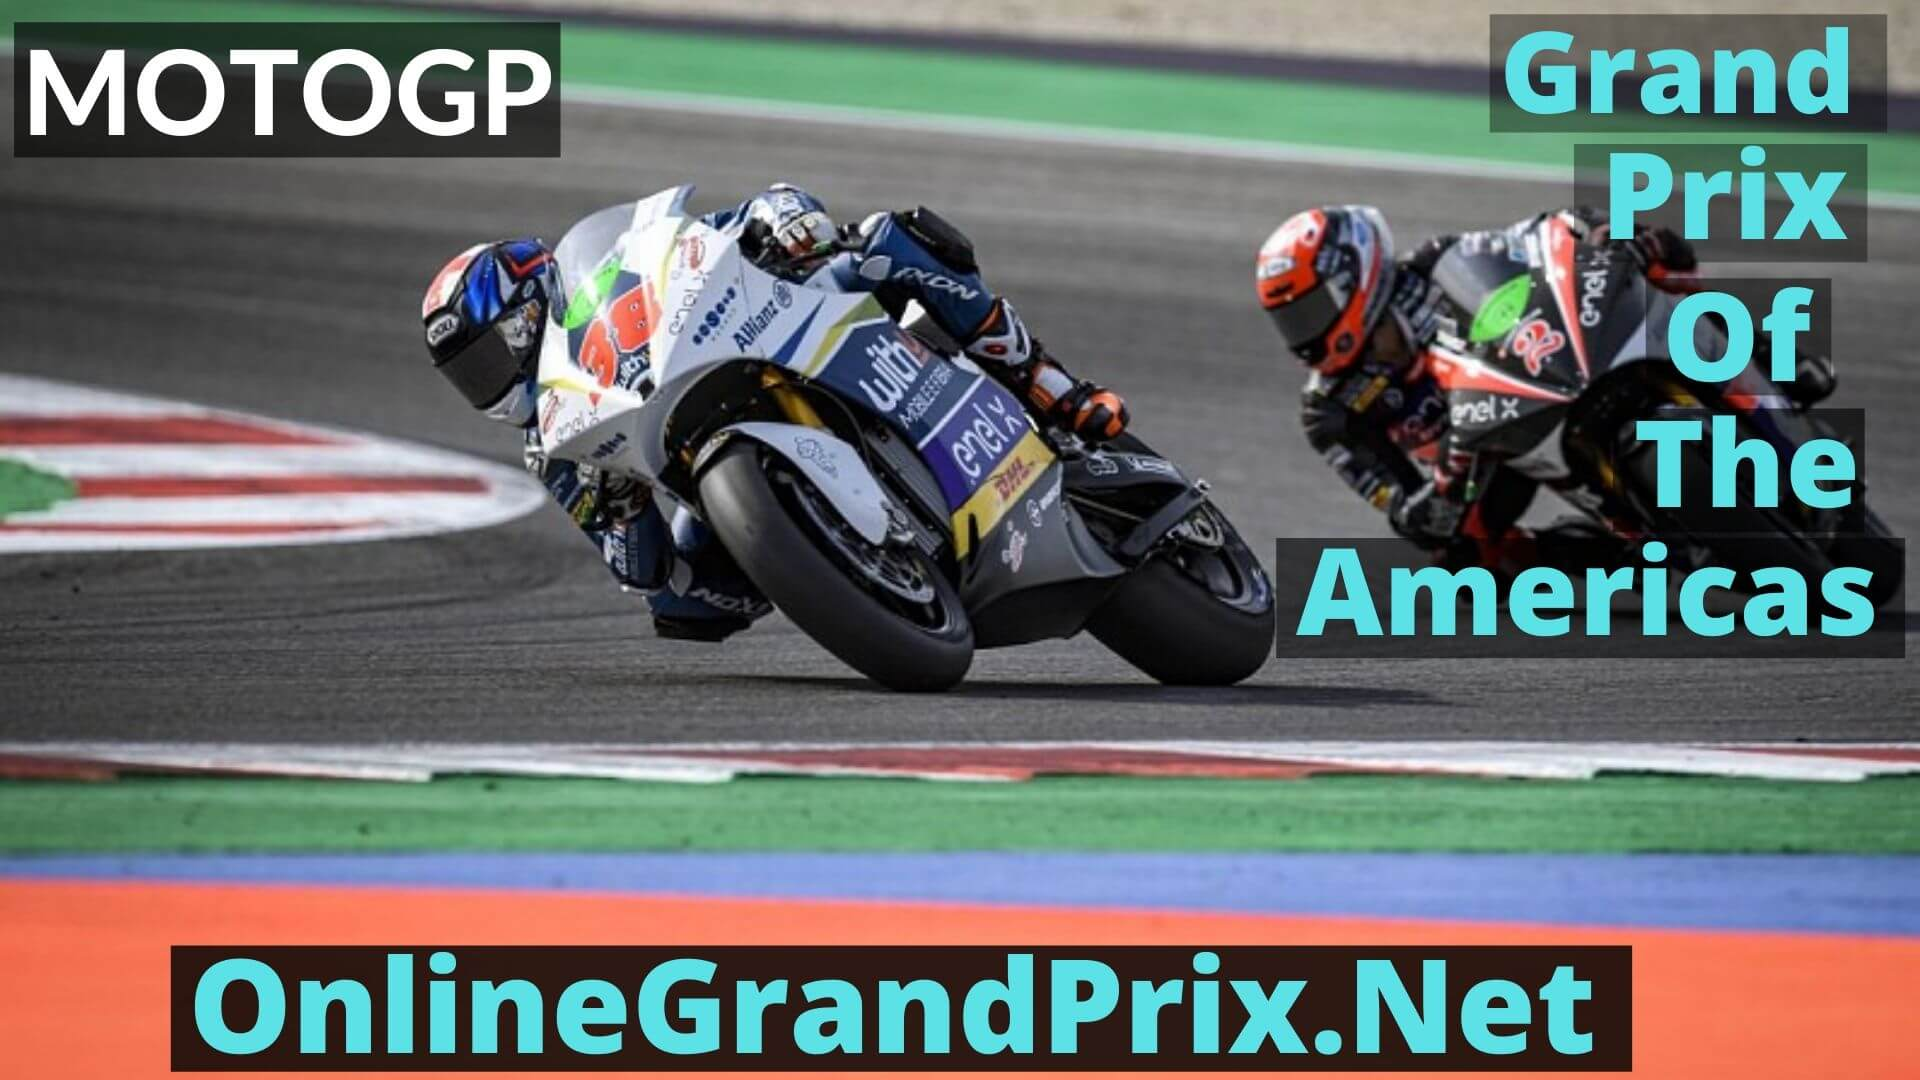 Grand Prix of The Americas Live Stream 2020 | MotoGP